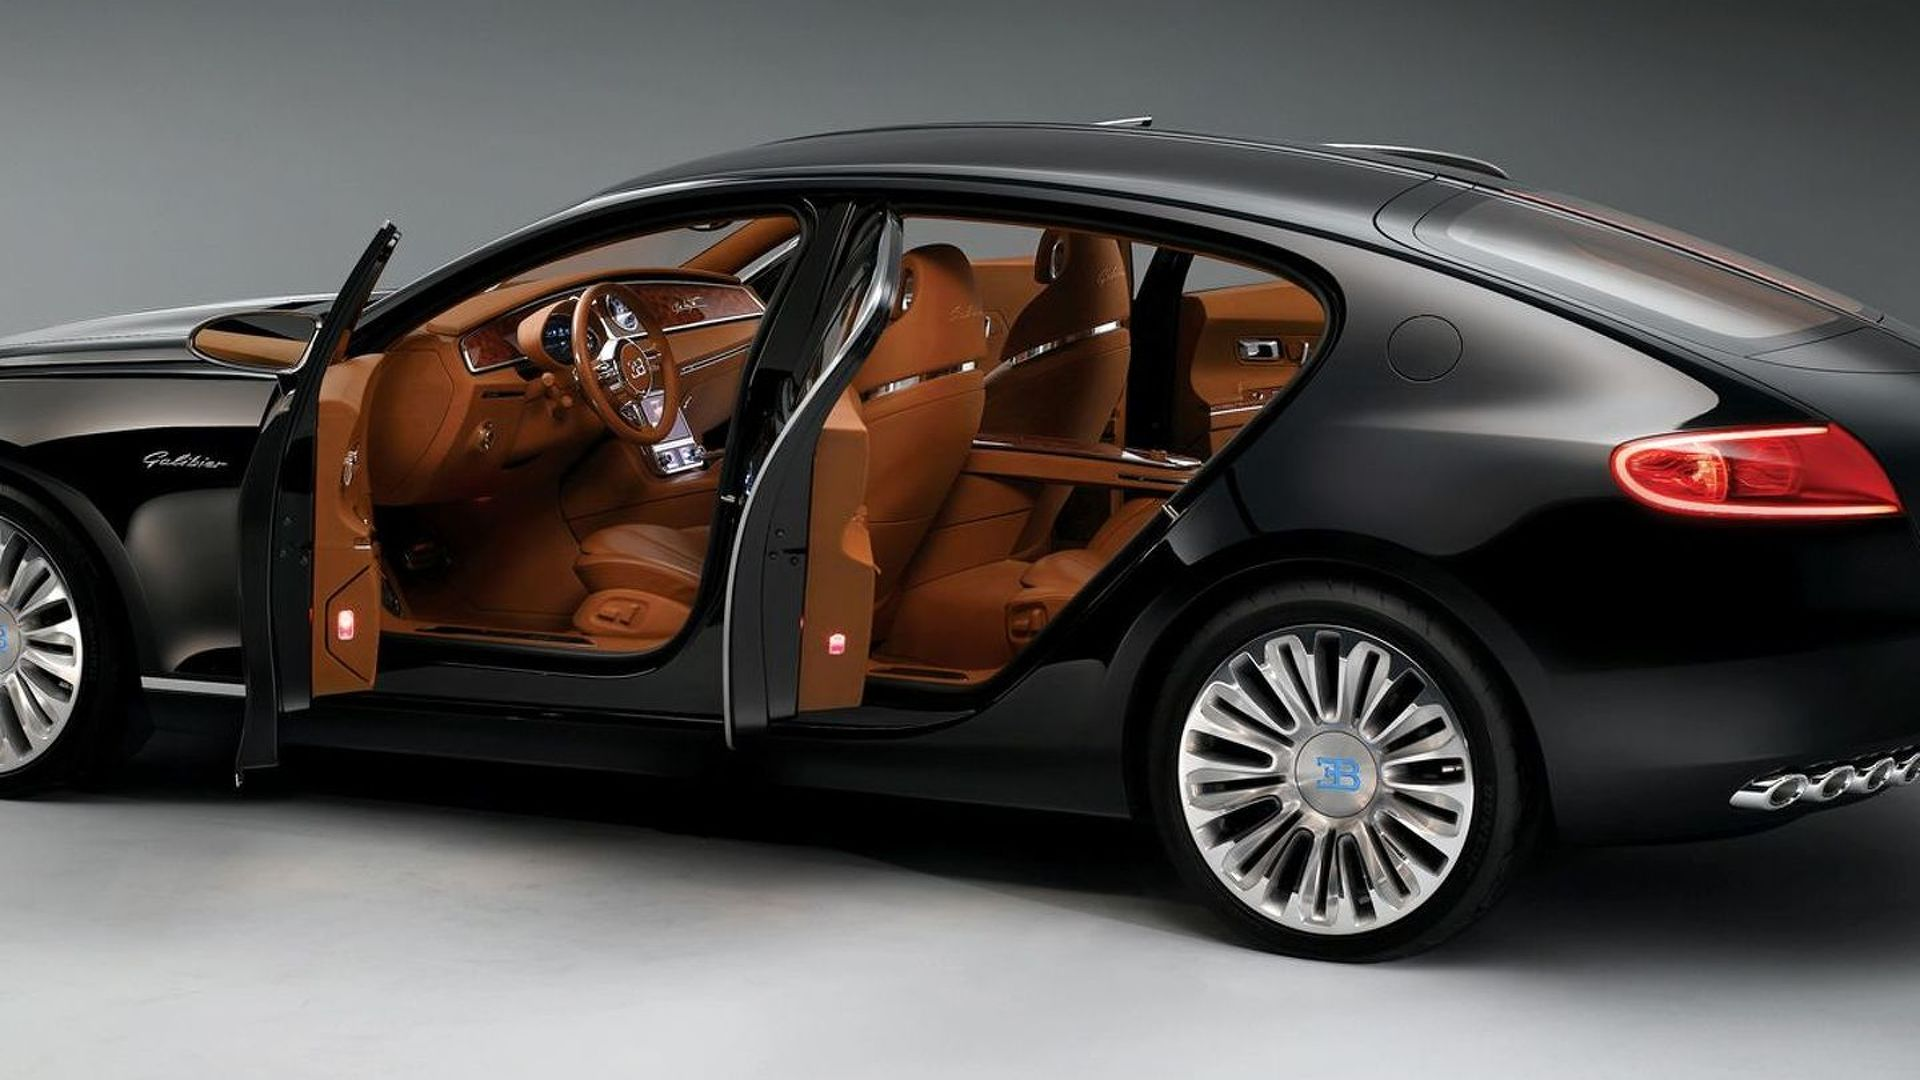 Bugatti says Veyron successor will have higher top speed